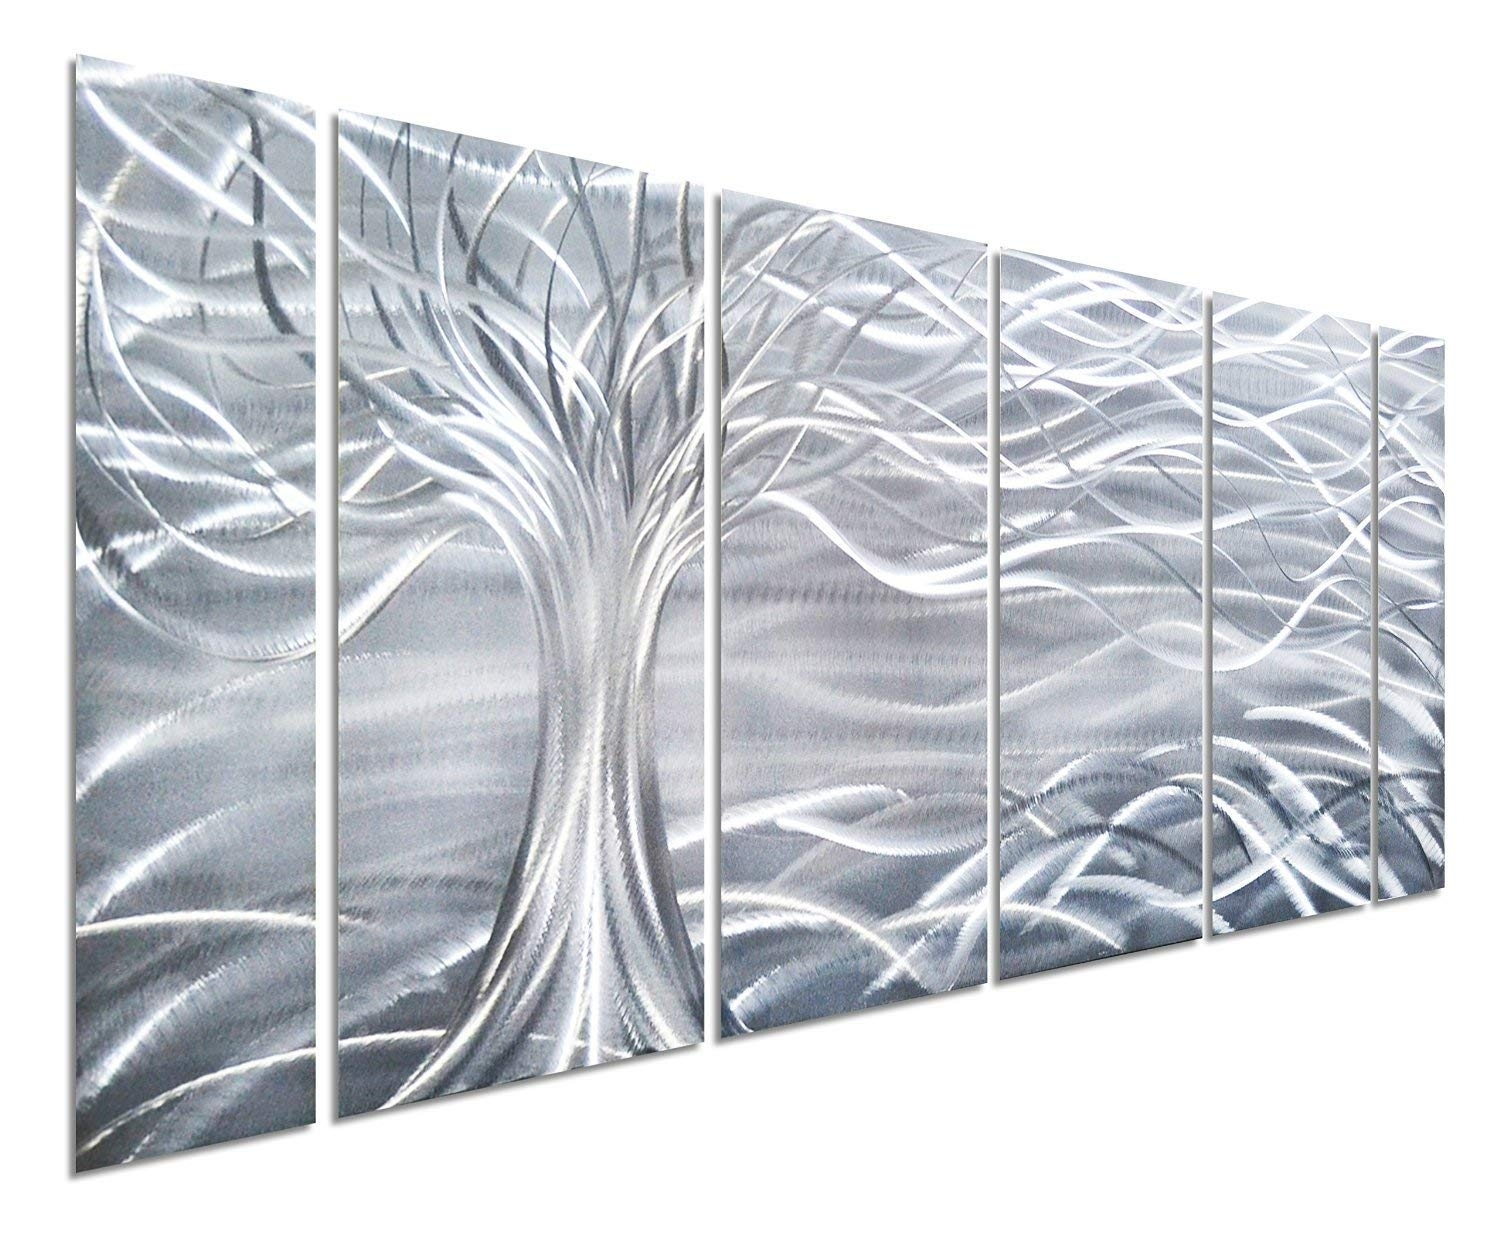 Amazon: Pure Art Willow Tree Of Life Metal Wall Art, Abstract within Metal Wall Art Panels (Image 3 of 20)